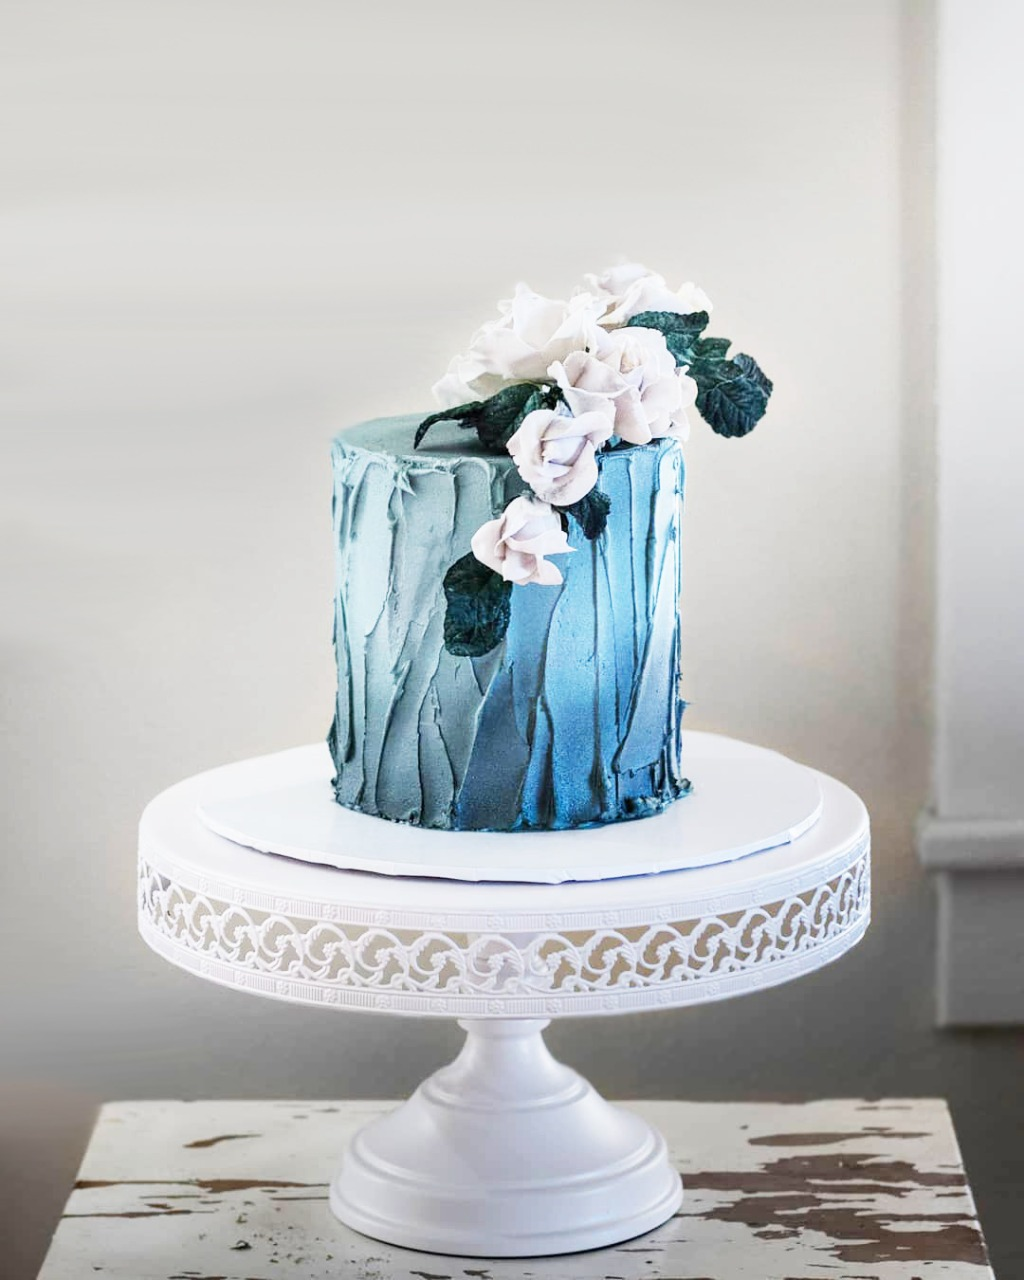 Pretty little something blue wedding cake by @bijoussweettreats on Opulent Treasures white cake stand.